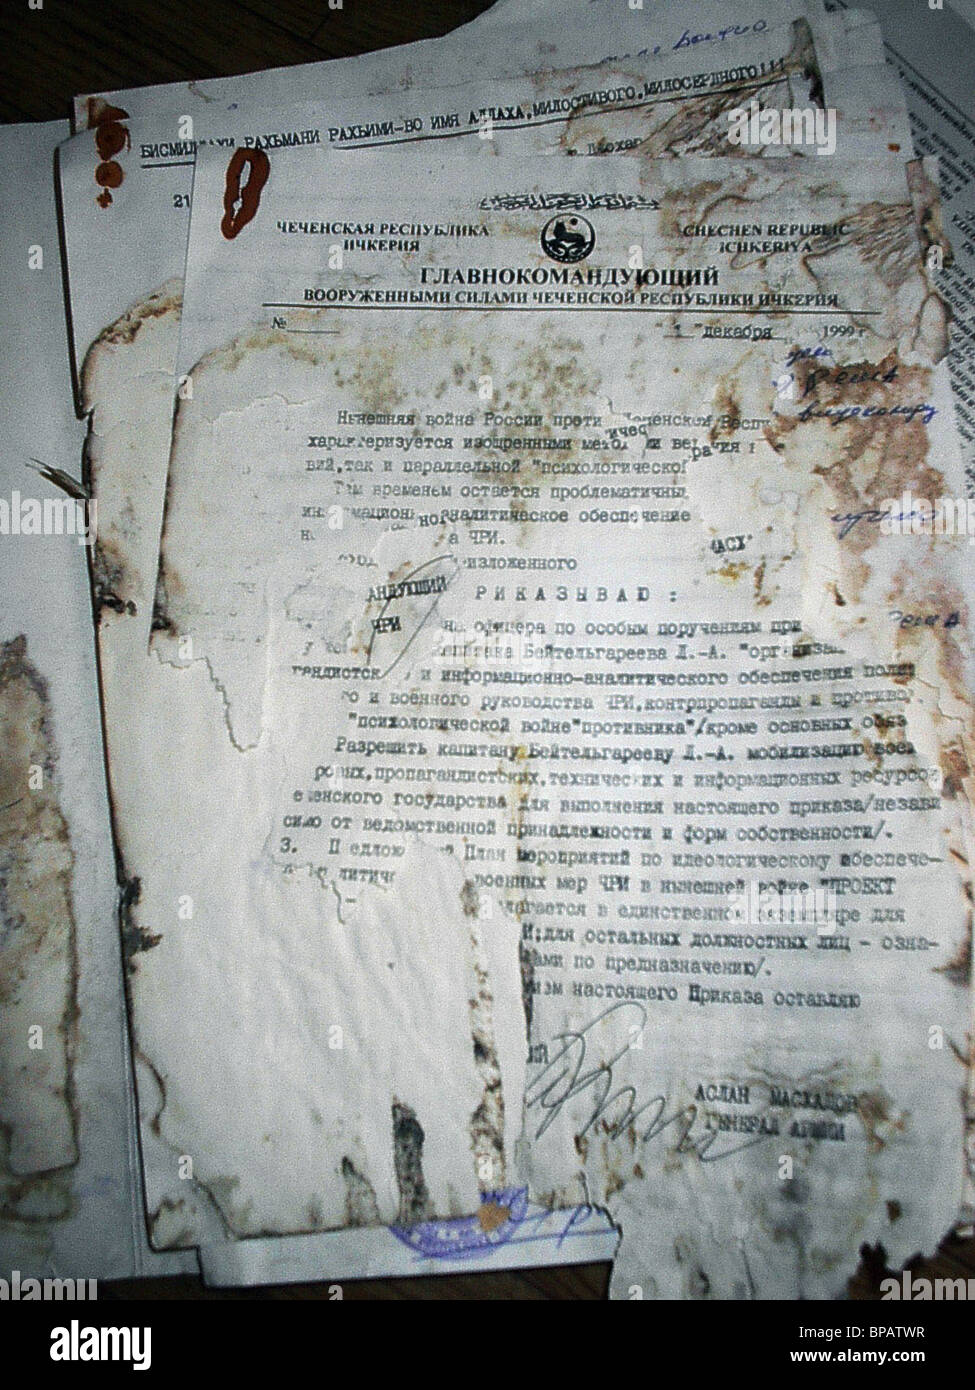 The archive of Aslan Maskhadov found - Stock Image